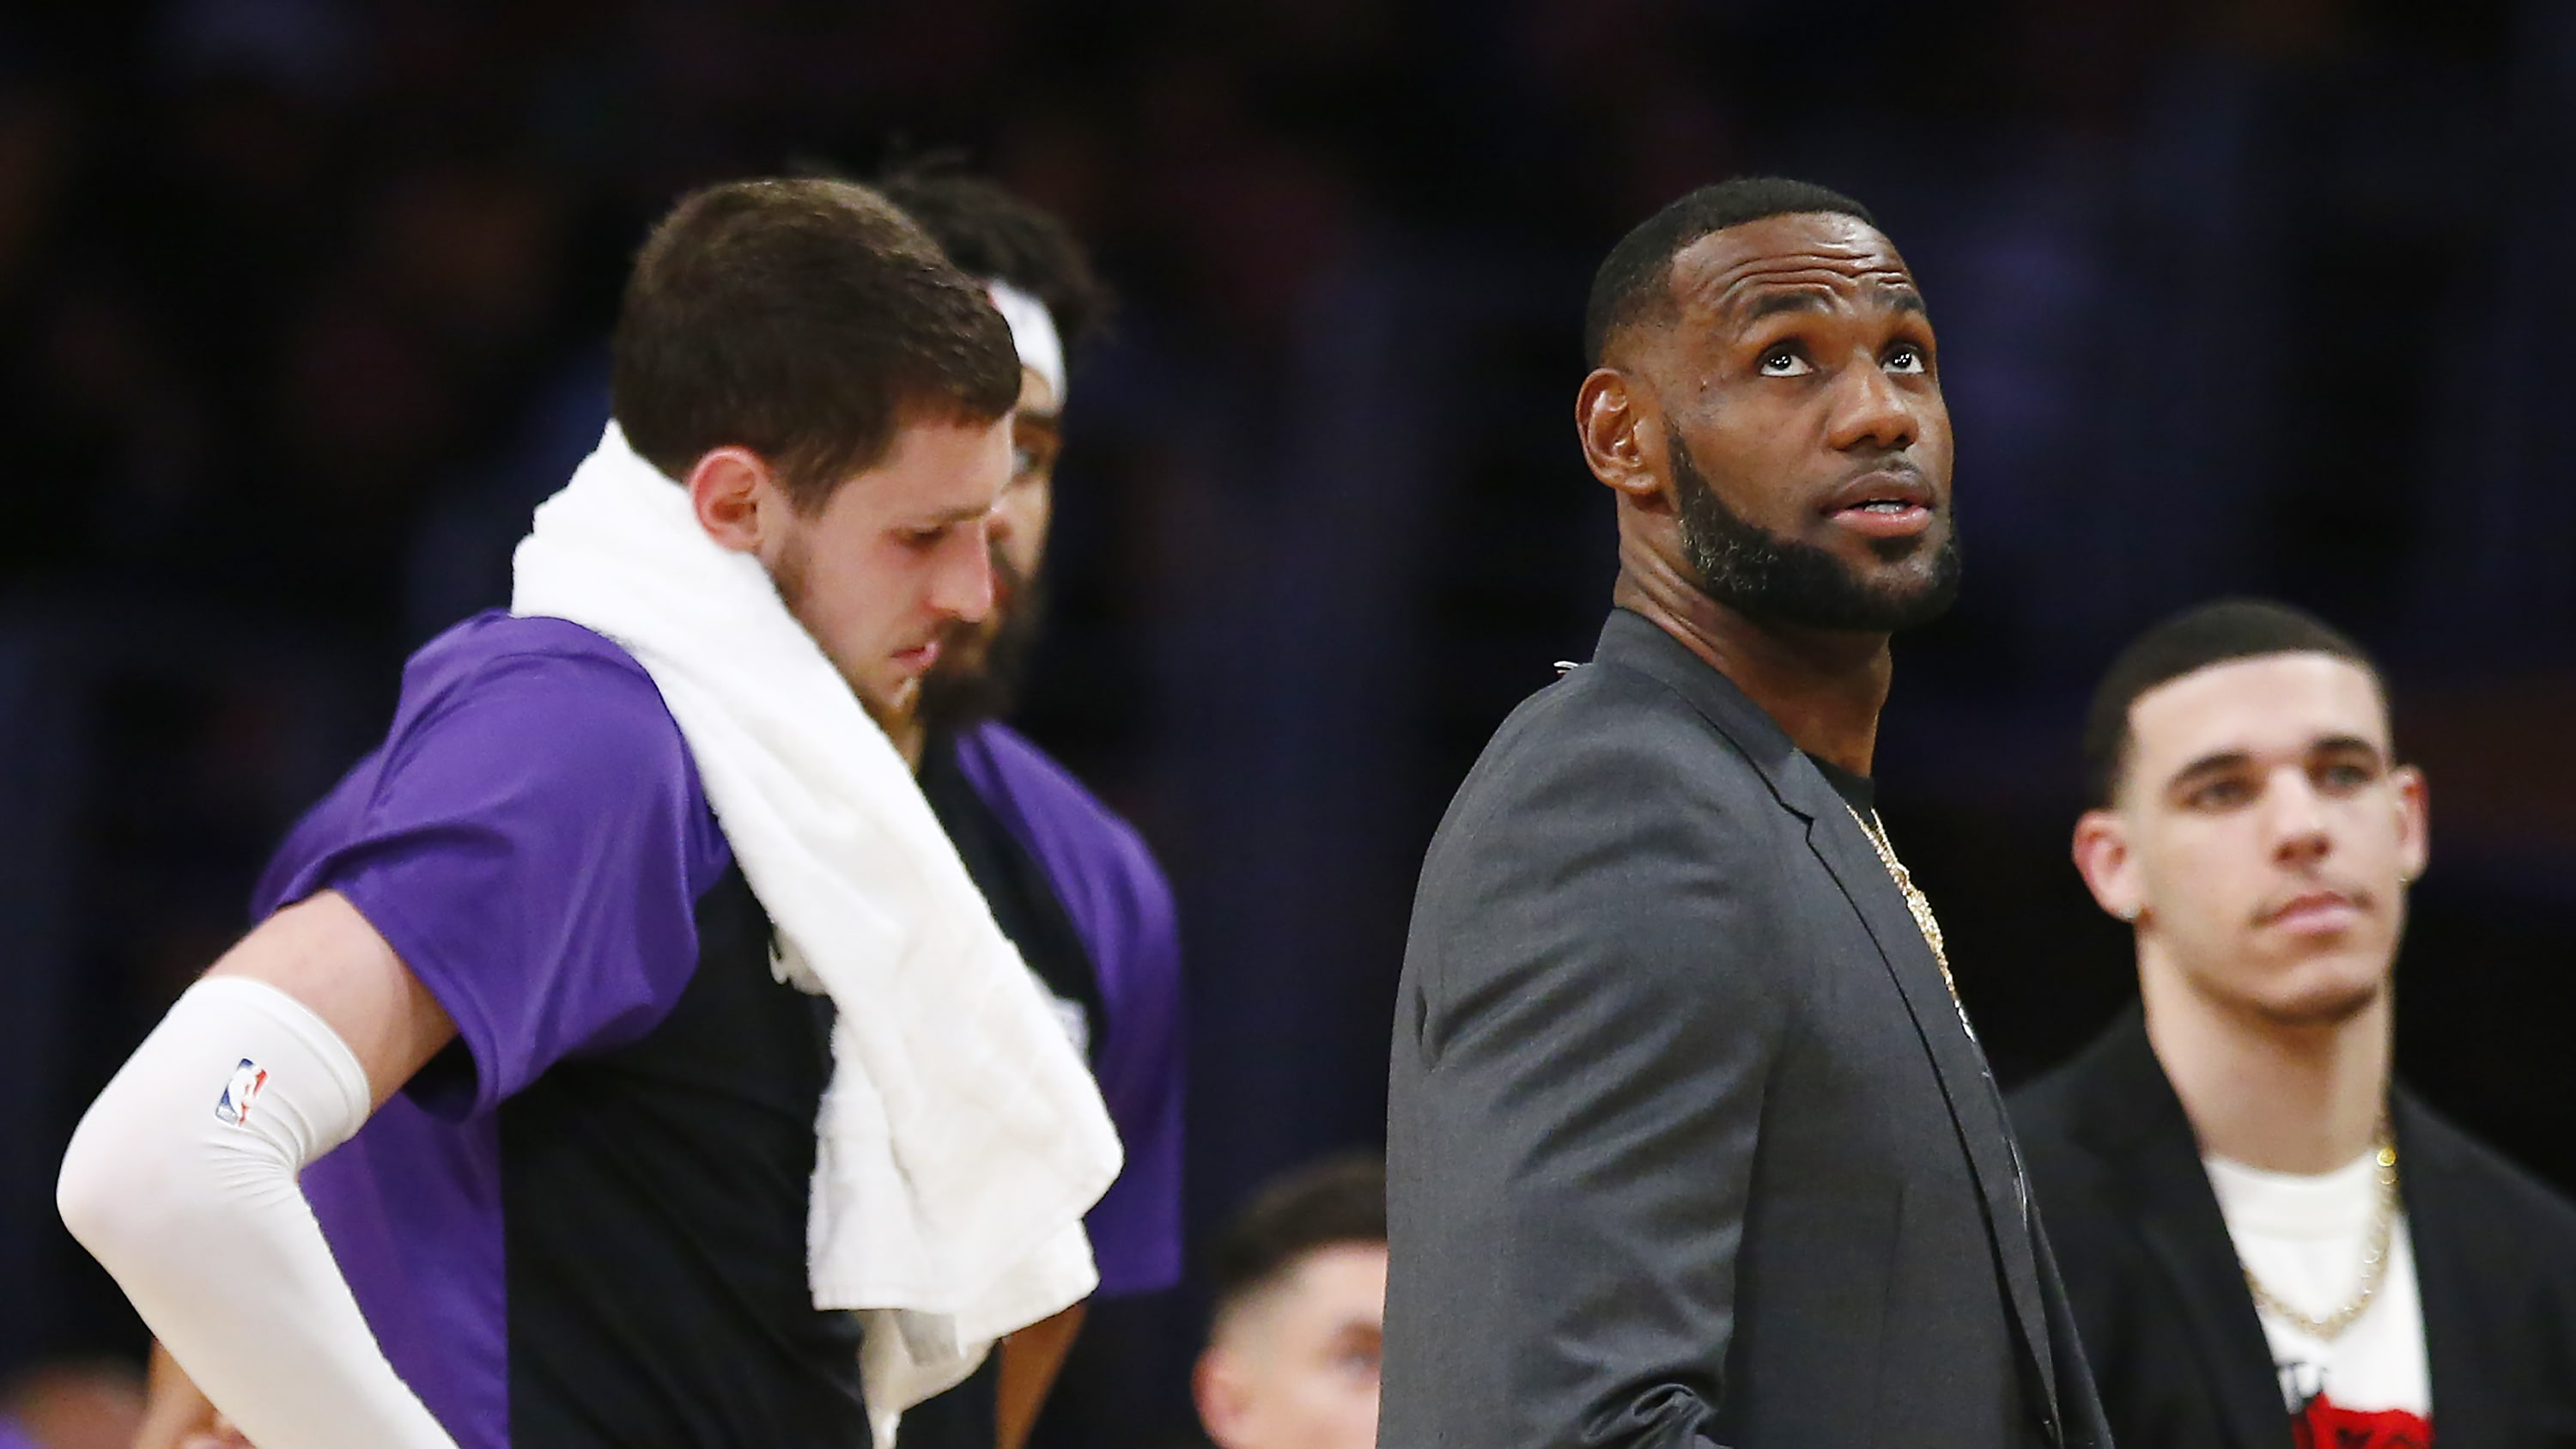 LOS ANGELES, CALIFORNIA - APRIL 04: LeBron James #23 of the Los Angeles Lakers looks on during a timeout in the second half of the game against the Golden State Warriors at Staples Center on April 04, 2019 in Los Angeles, California. NOTE TO USER: User expressly acknowledges and agrees that, by downloading and or using this photograph, User is consenting to the terms and conditions of the Getty Images License Agreement. (Photo by Yong Teck Lim/Getty Images)